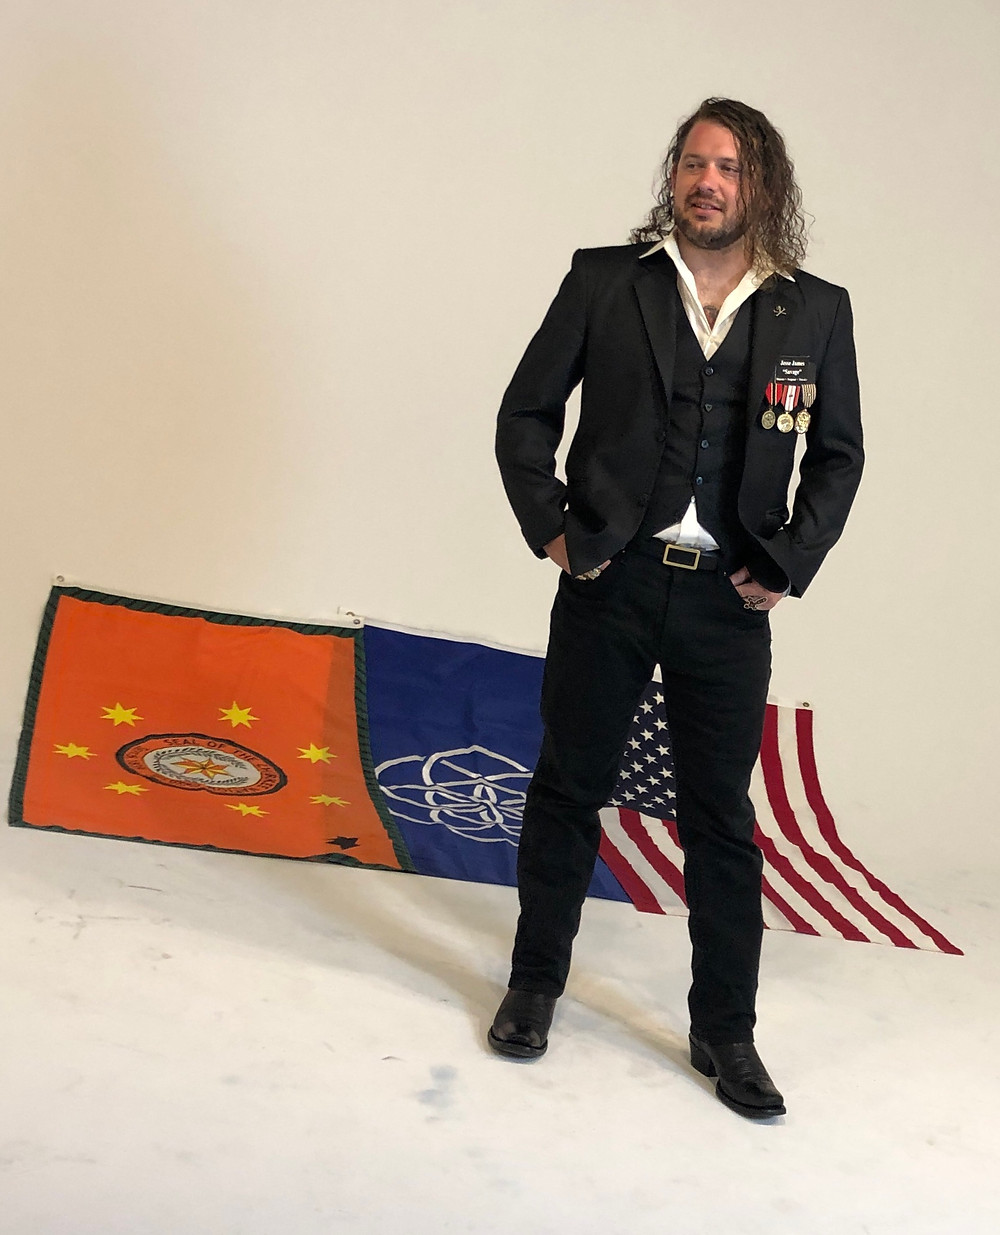 Jesse James Savage standing in front of the Cherokee Nation flag, the proposed world flag, and the U.S. flag.